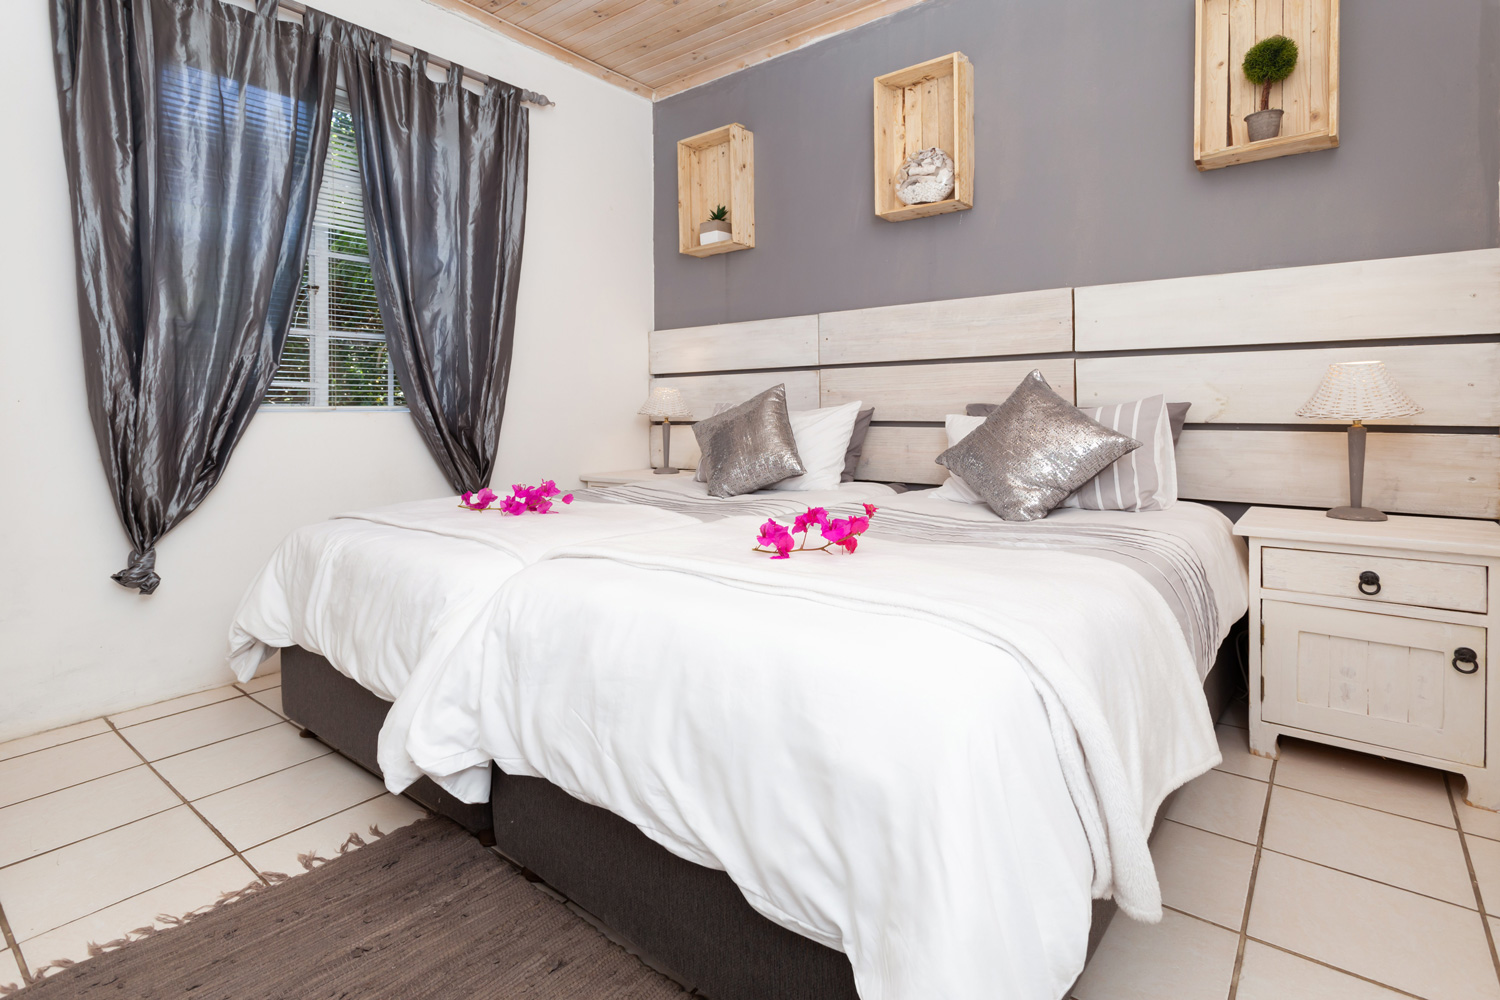 Milkwood Cottage Self Catering Accommodation in Chelsea Main Bedroom